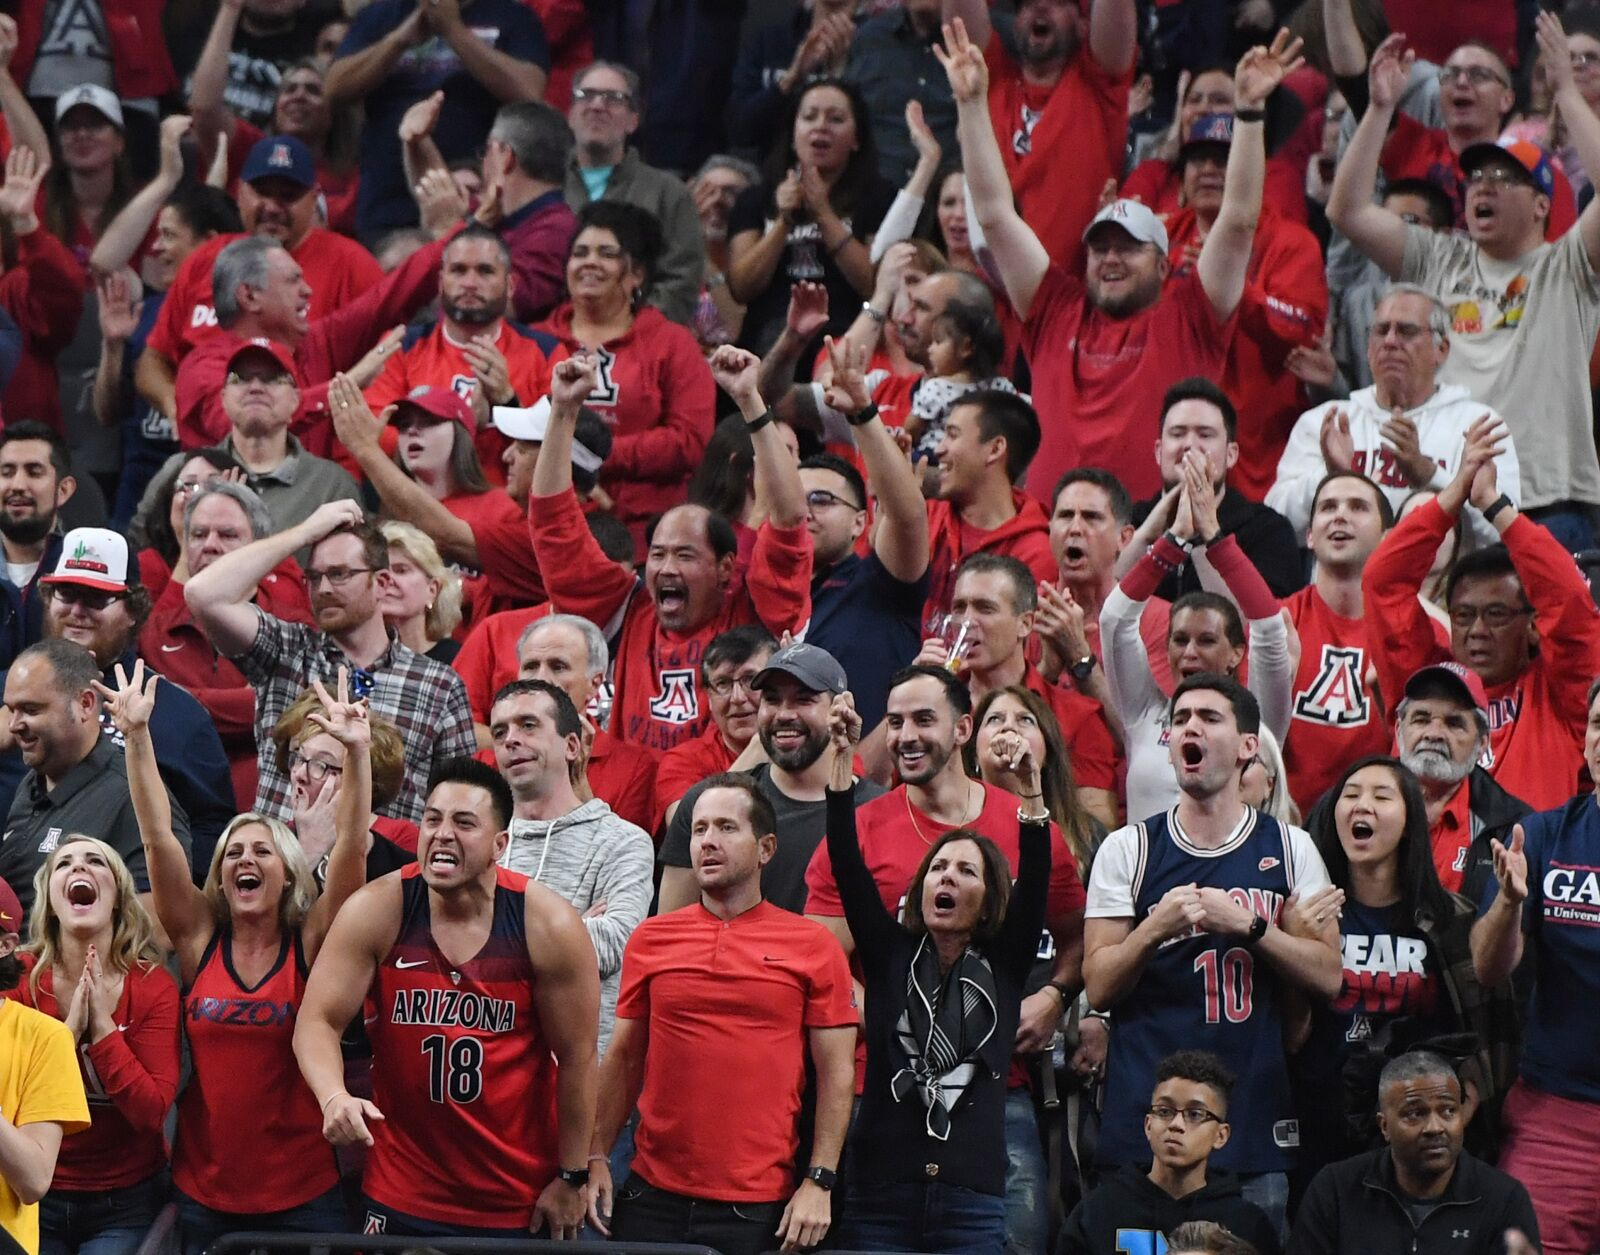 Arizona Basketball  Highlights of the 2018-19 annual Wildcats Red and Blue  game b6a5dd425